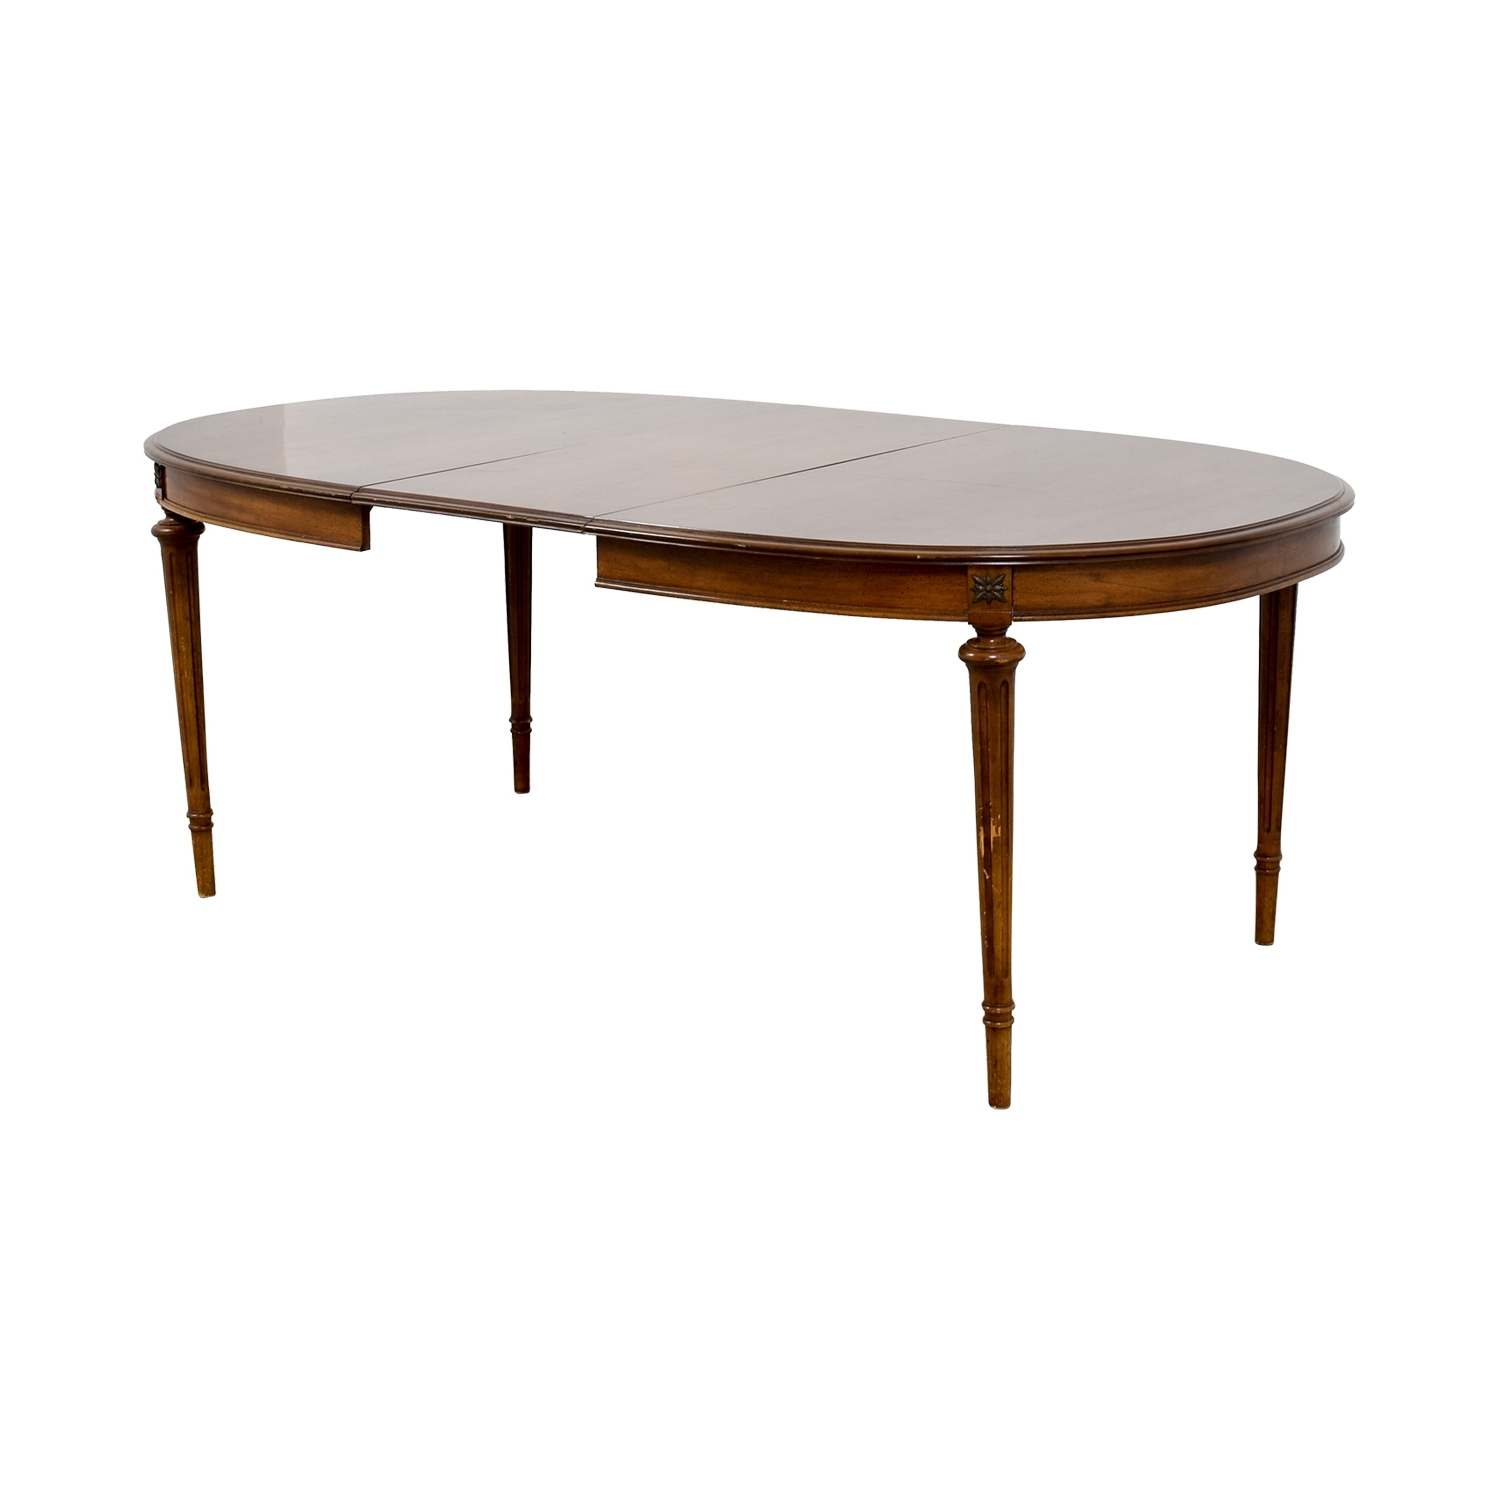 [%64% Off – Wood Extendable Oval Dining Table / Tables In Current Oval Dining Tables For Sale|Oval Dining Tables For Sale In Well Known 64% Off – Wood Extendable Oval Dining Table / Tables|Recent Oval Dining Tables For Sale Pertaining To 64% Off – Wood Extendable Oval Dining Table / Tables|Trendy 64% Off – Wood Extendable Oval Dining Table / Tables With Regard To Oval Dining Tables For Sale%] (View 10 of 25)